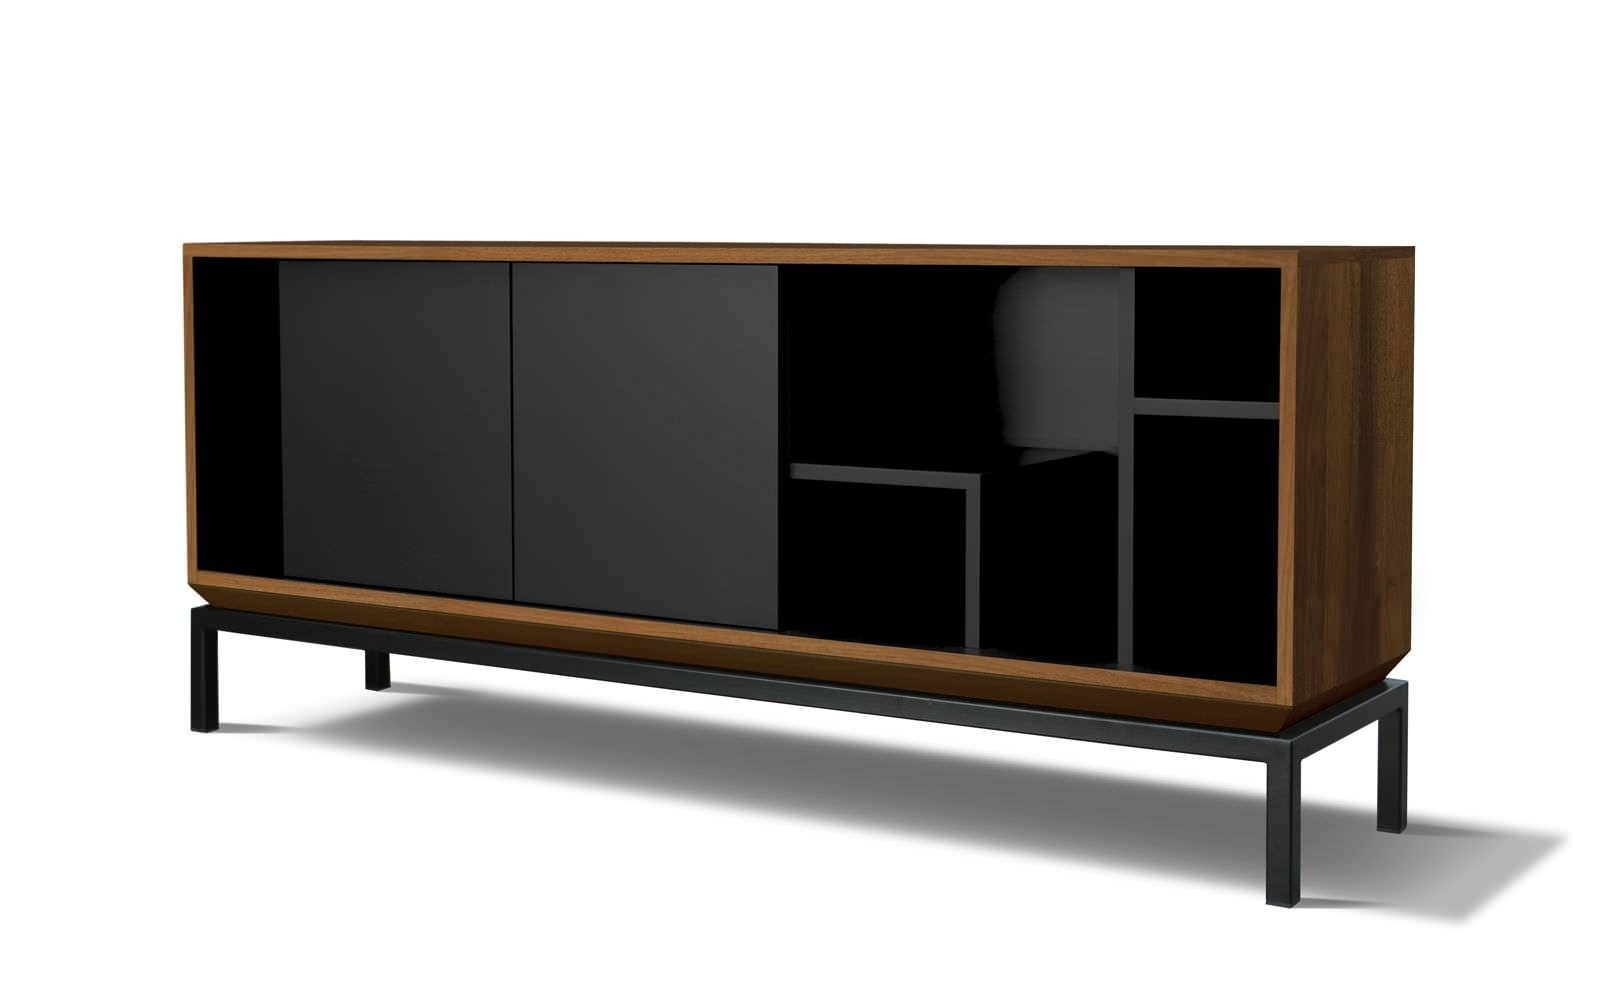 Contemporary Sideboard / Oak / Walnut / Lacquered Mdf – My City Regarding Black And Walnut Sideboards (View 7 of 15)